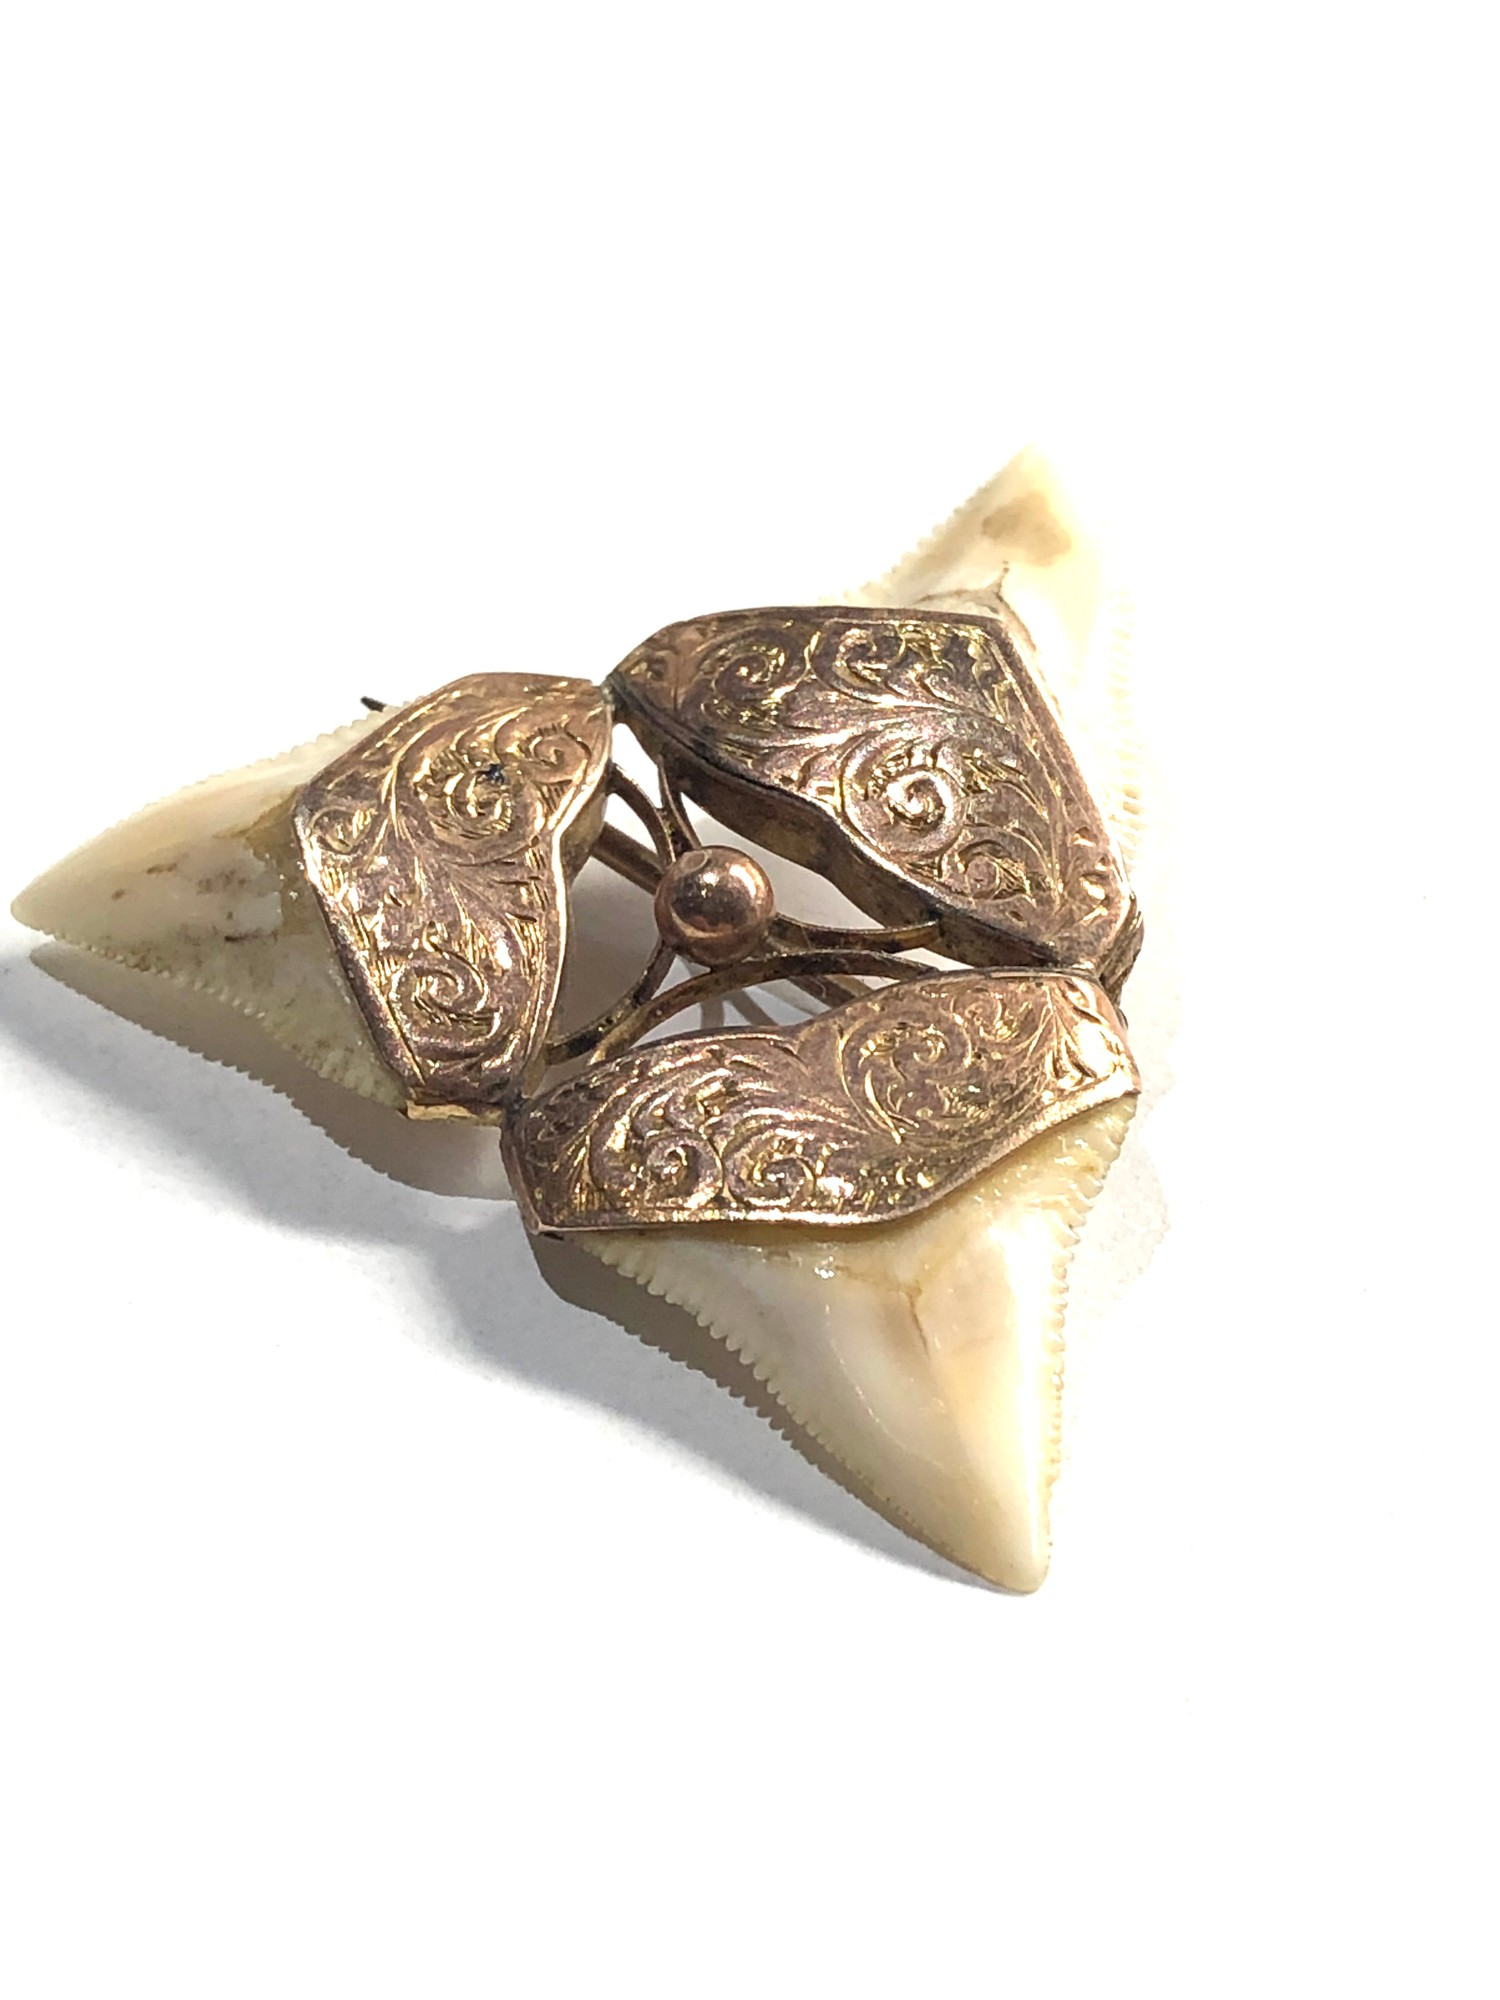 9ct Gold ornate detail shark tooth brooch - Image 2 of 3